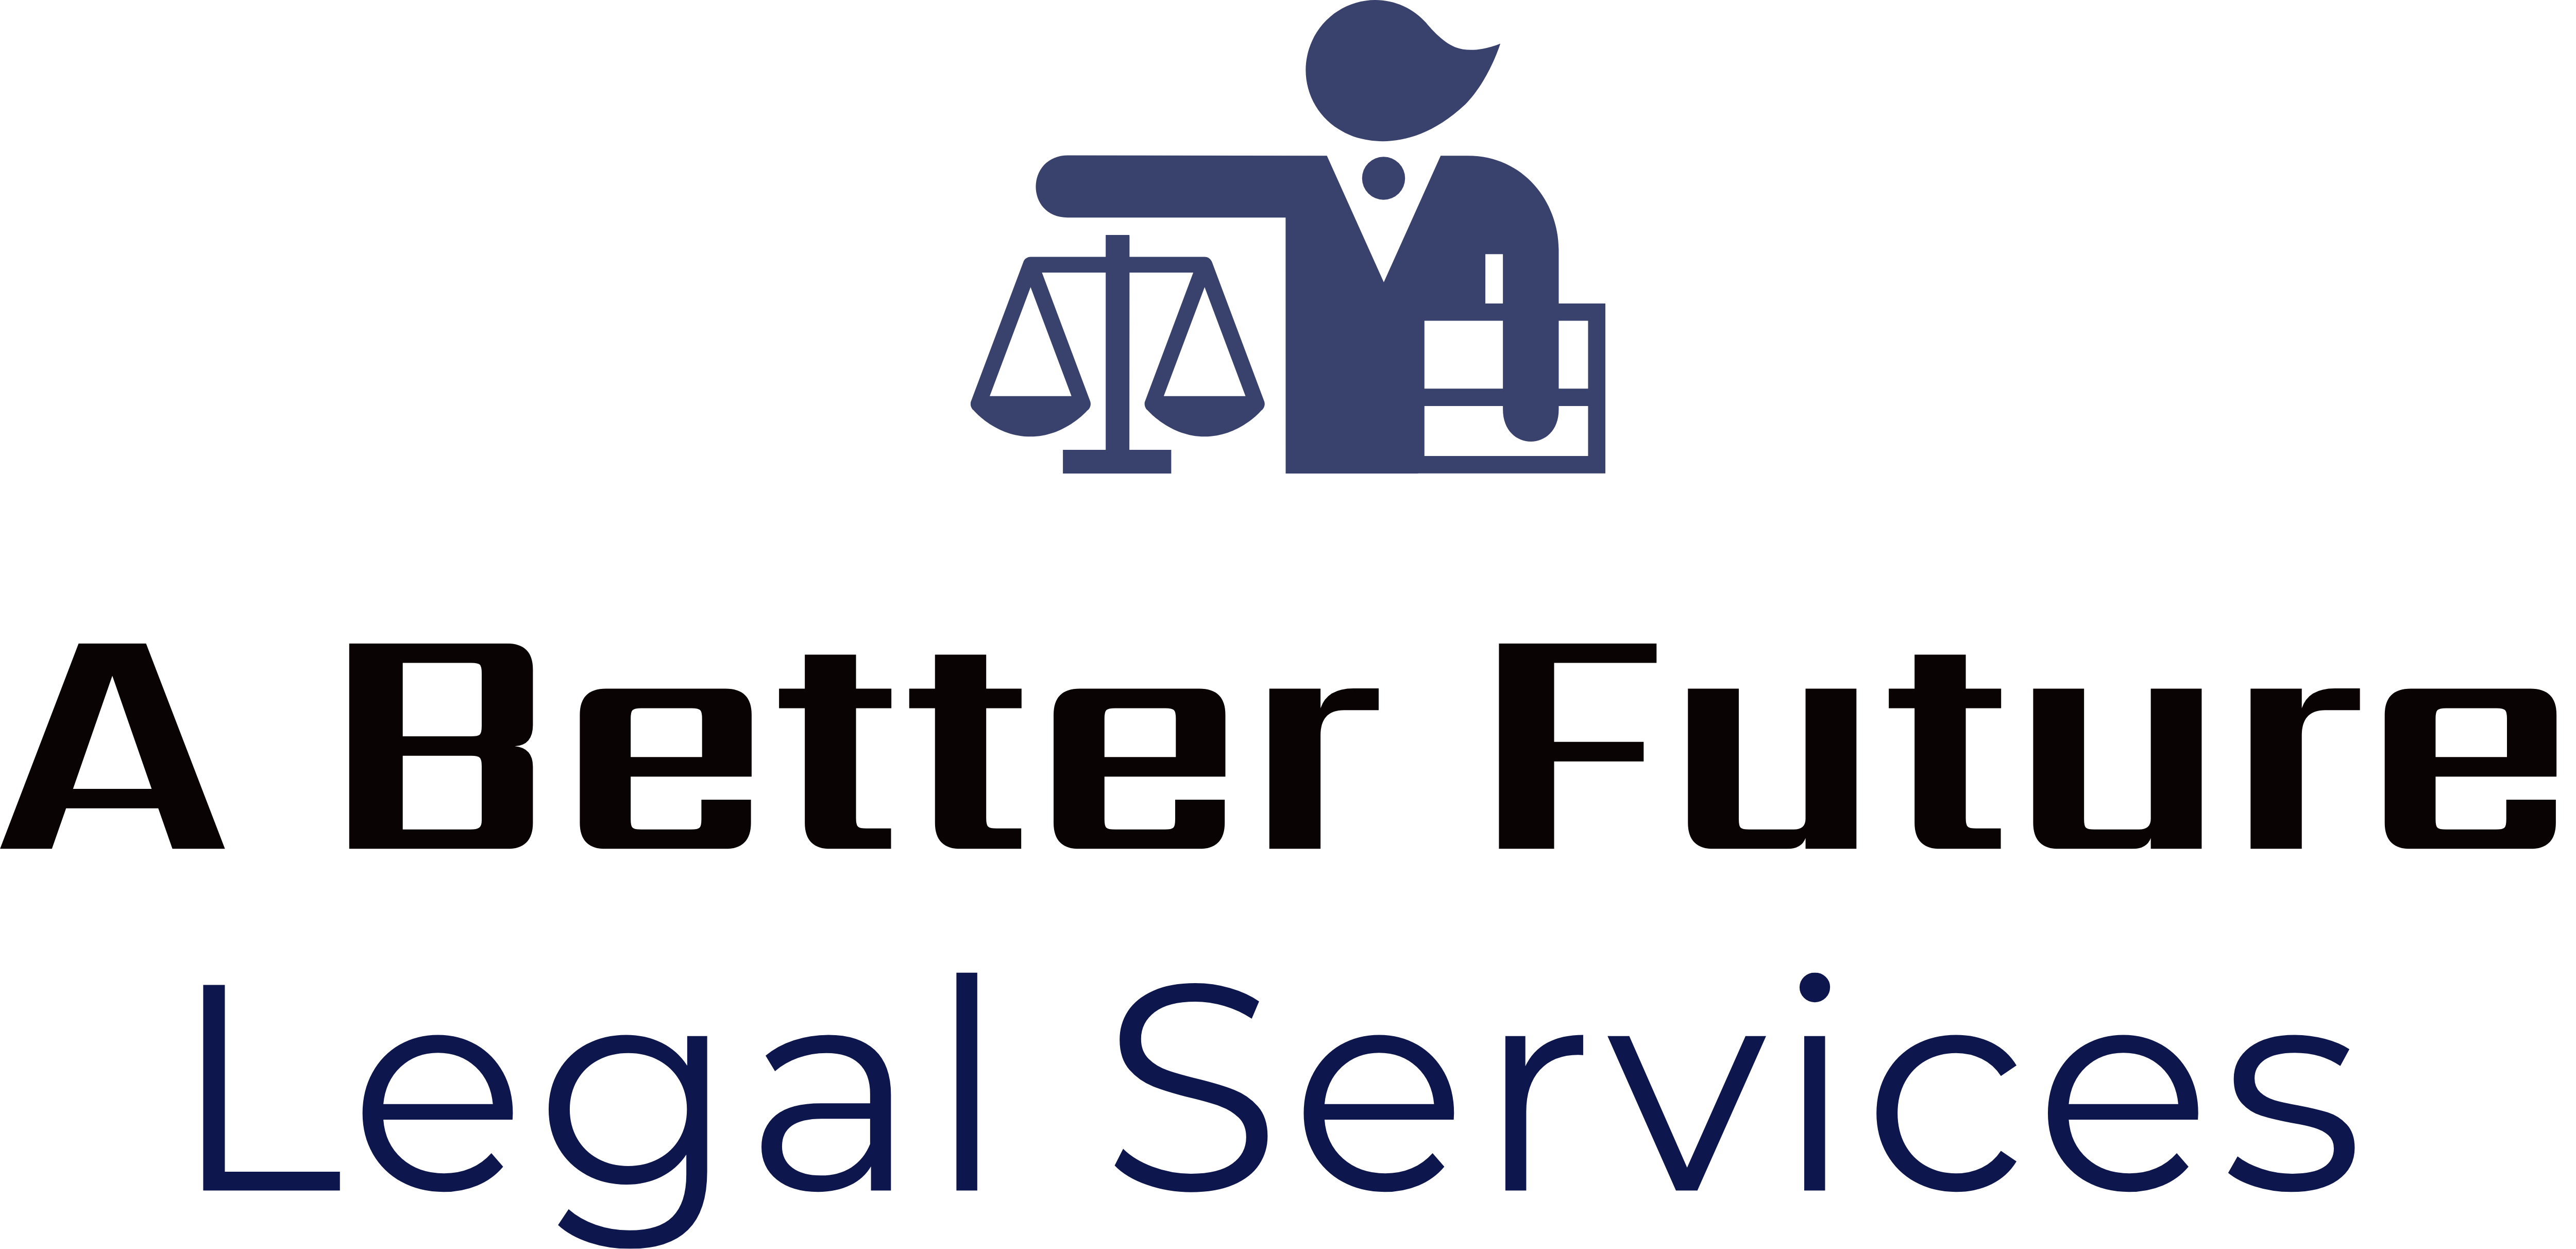 A Better Future Legal Services